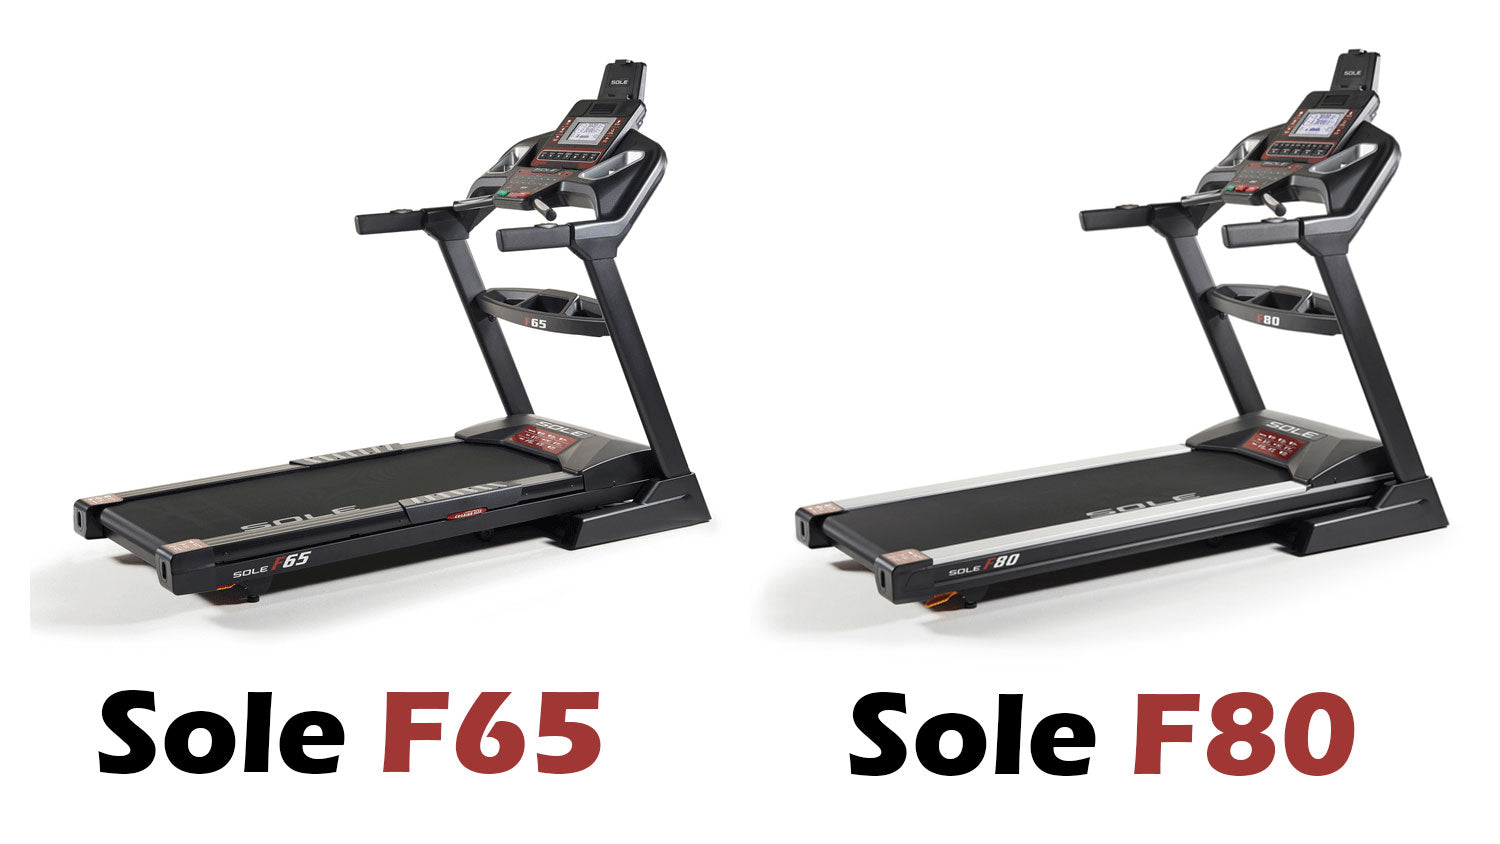 Sole F65 vs Sole F80 Treadmill Comparison